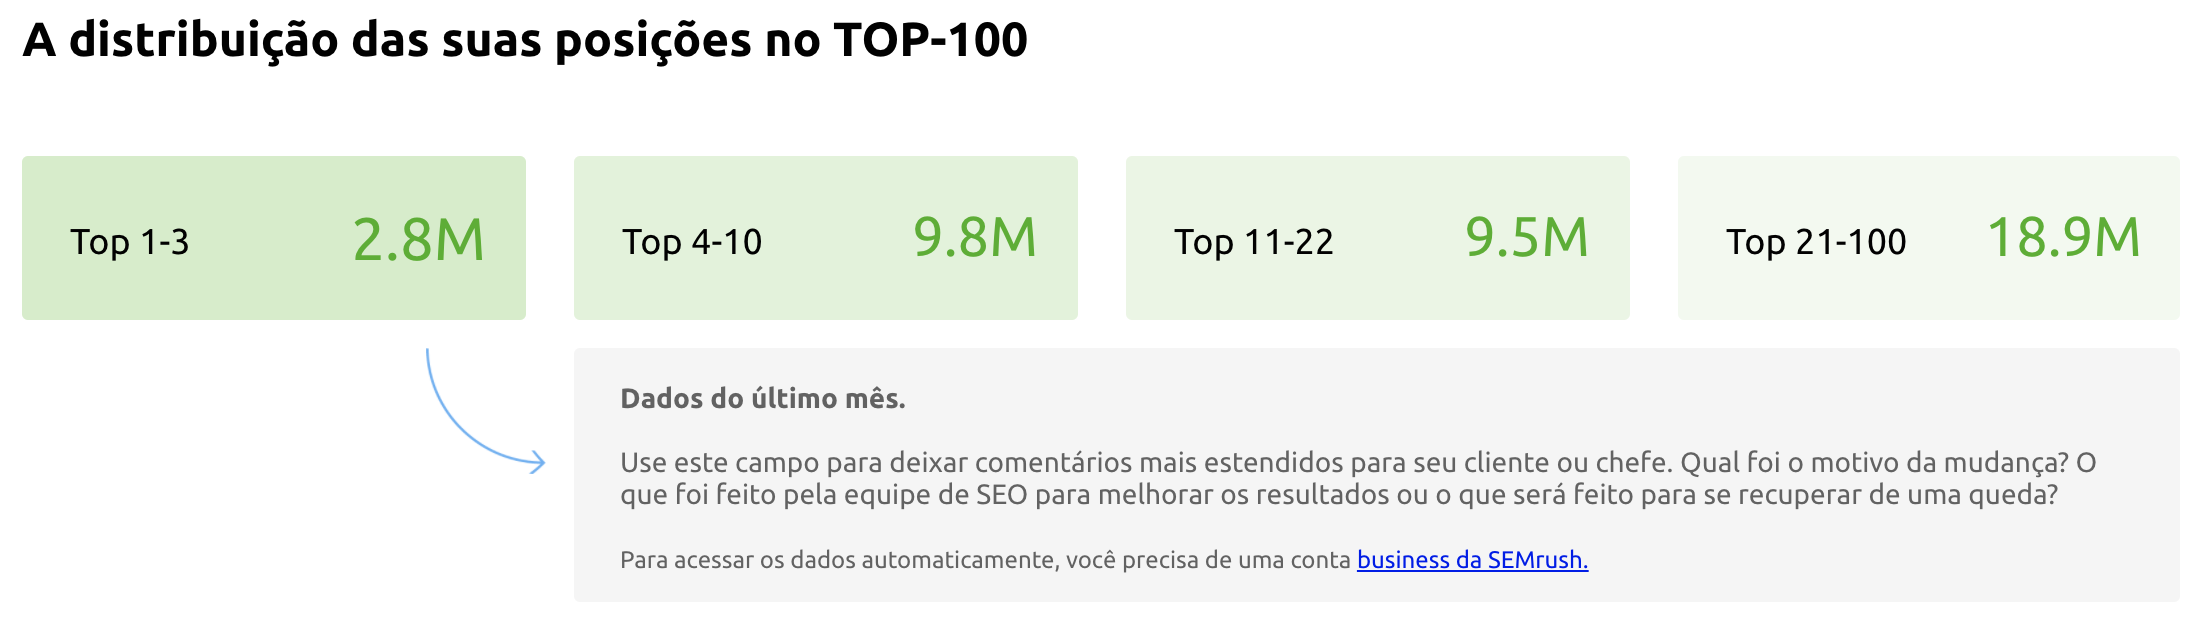 SEO Template: Positions Breakdown within TOP-100